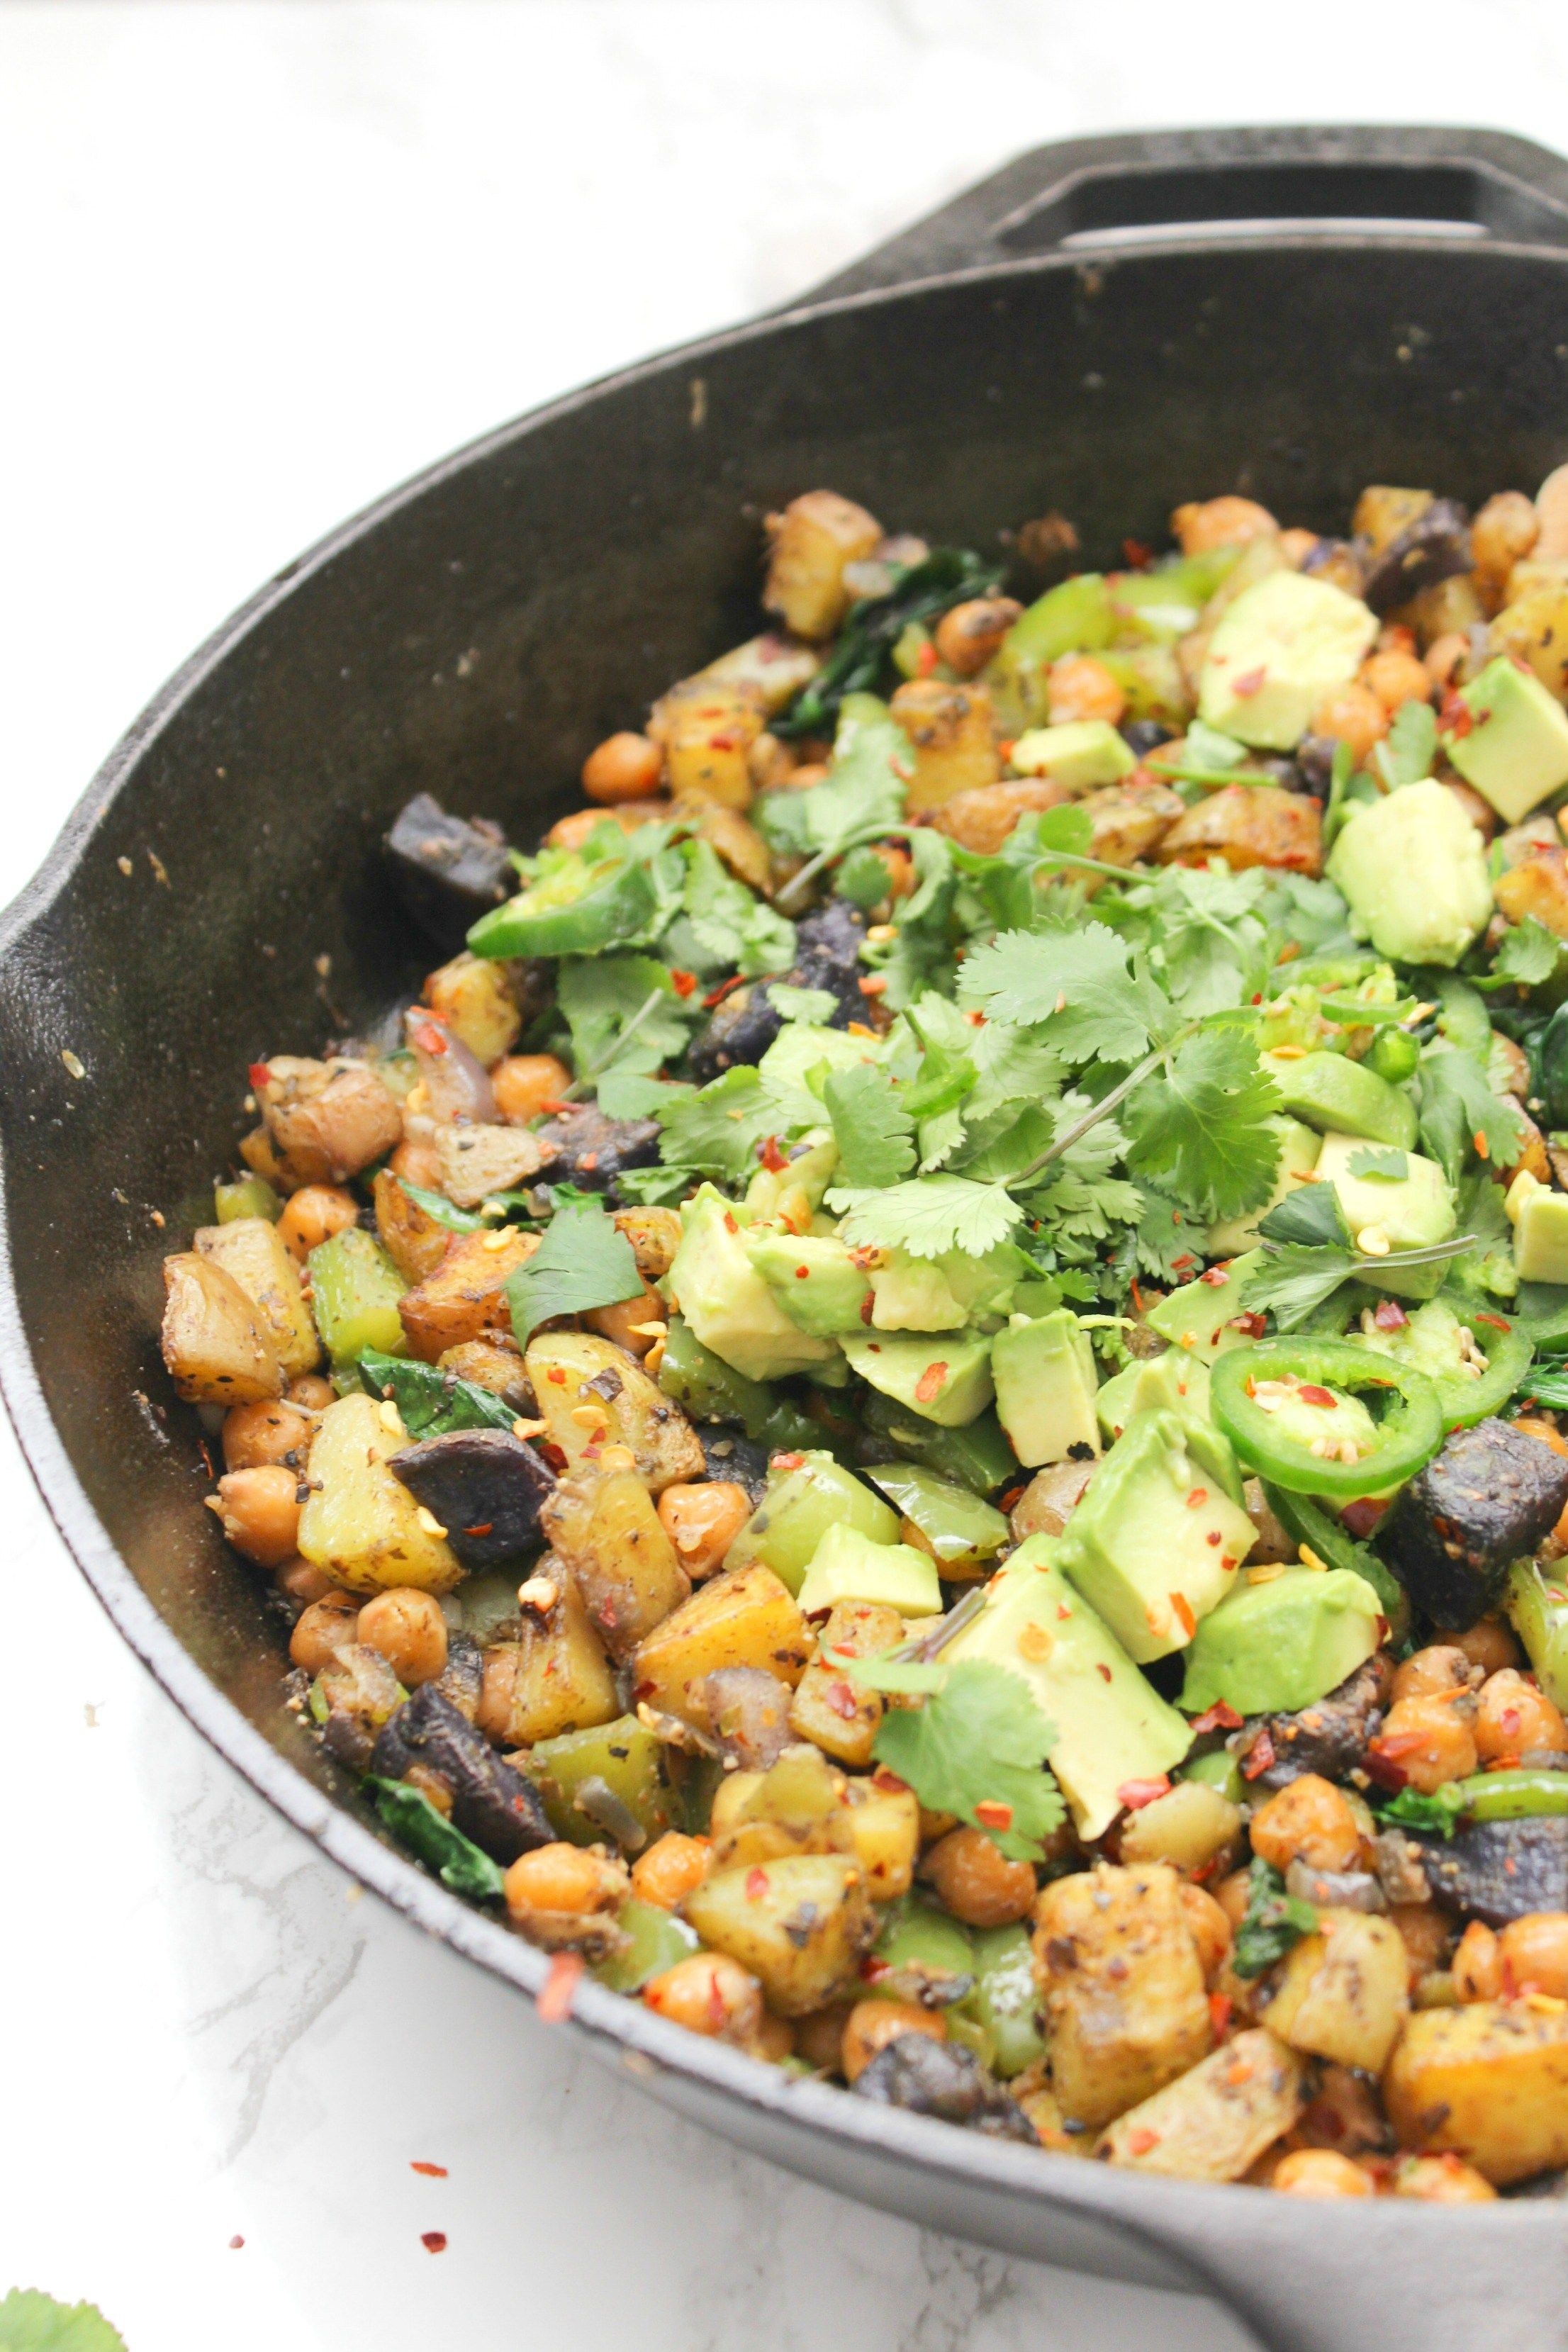 Vegan Chickpea Potato Breakfast Hash This Savory Vegan Recipe Breakfast Potatoes Savory Vegan Whole Food Recipes